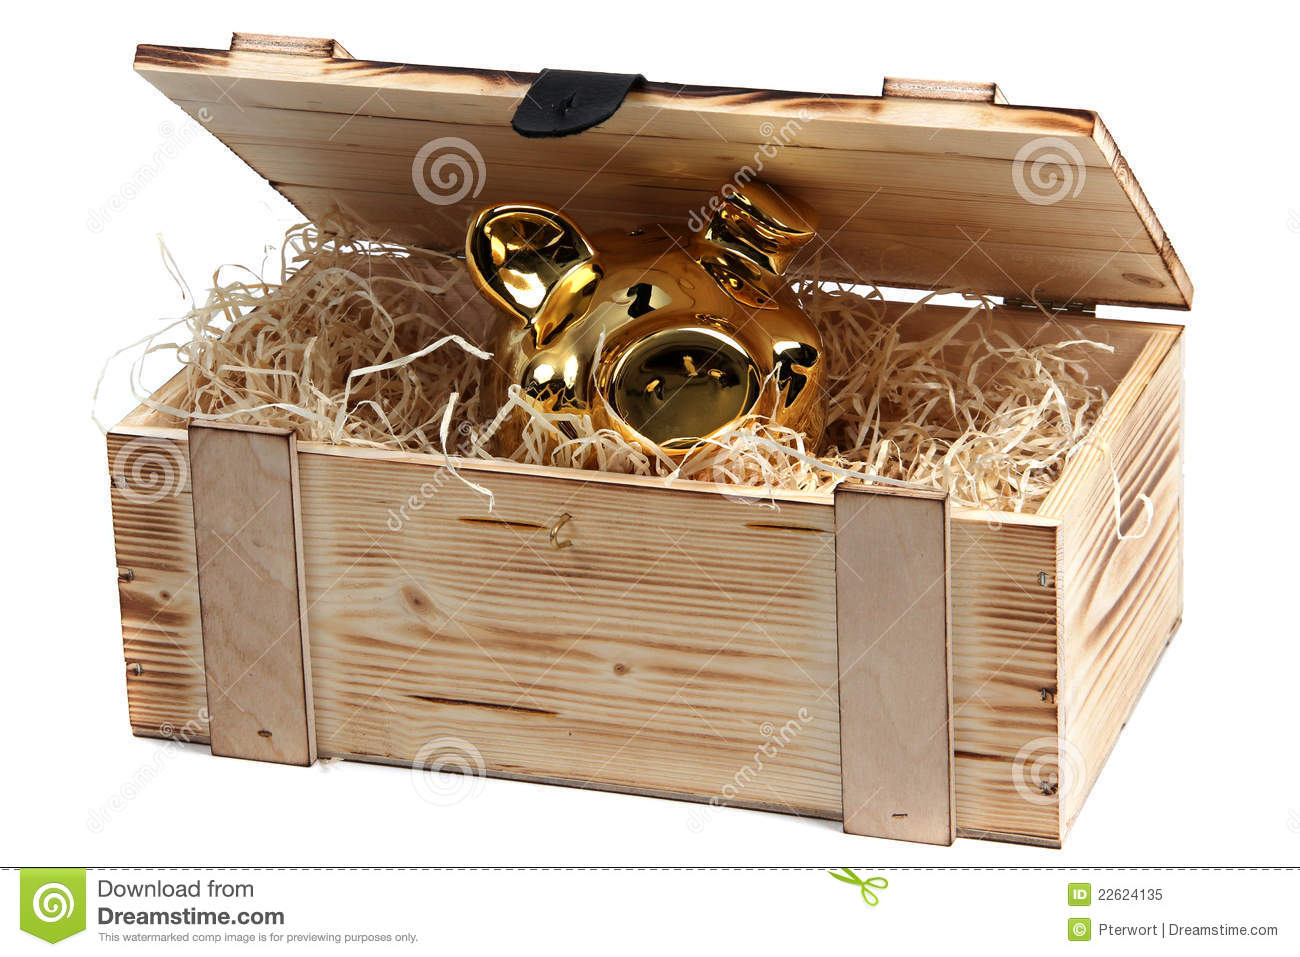 Related informations : Free Wooden Garbage Box Plans